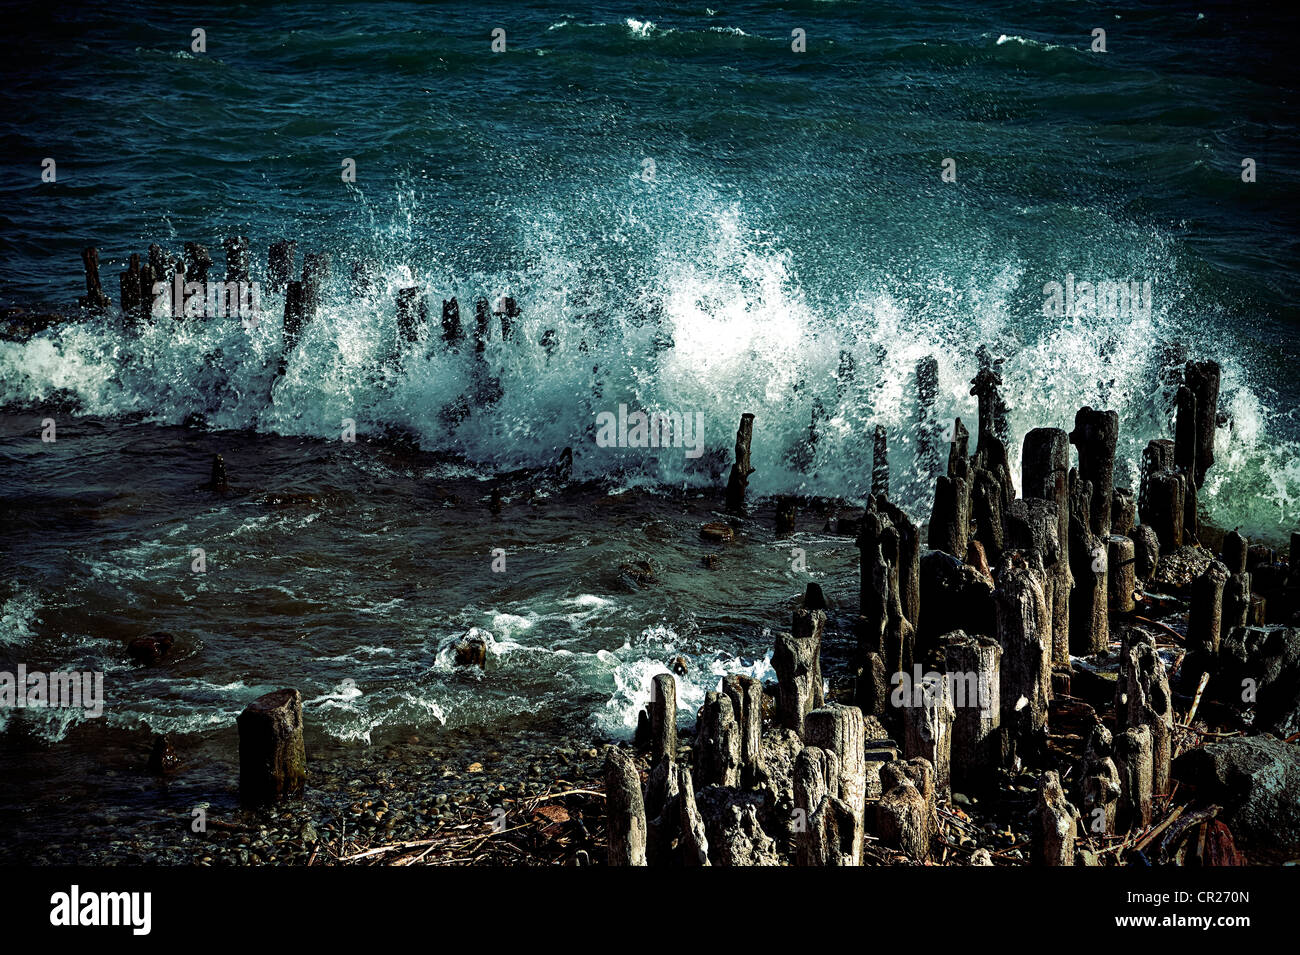 Waves breaking over wood piles - Stock Image